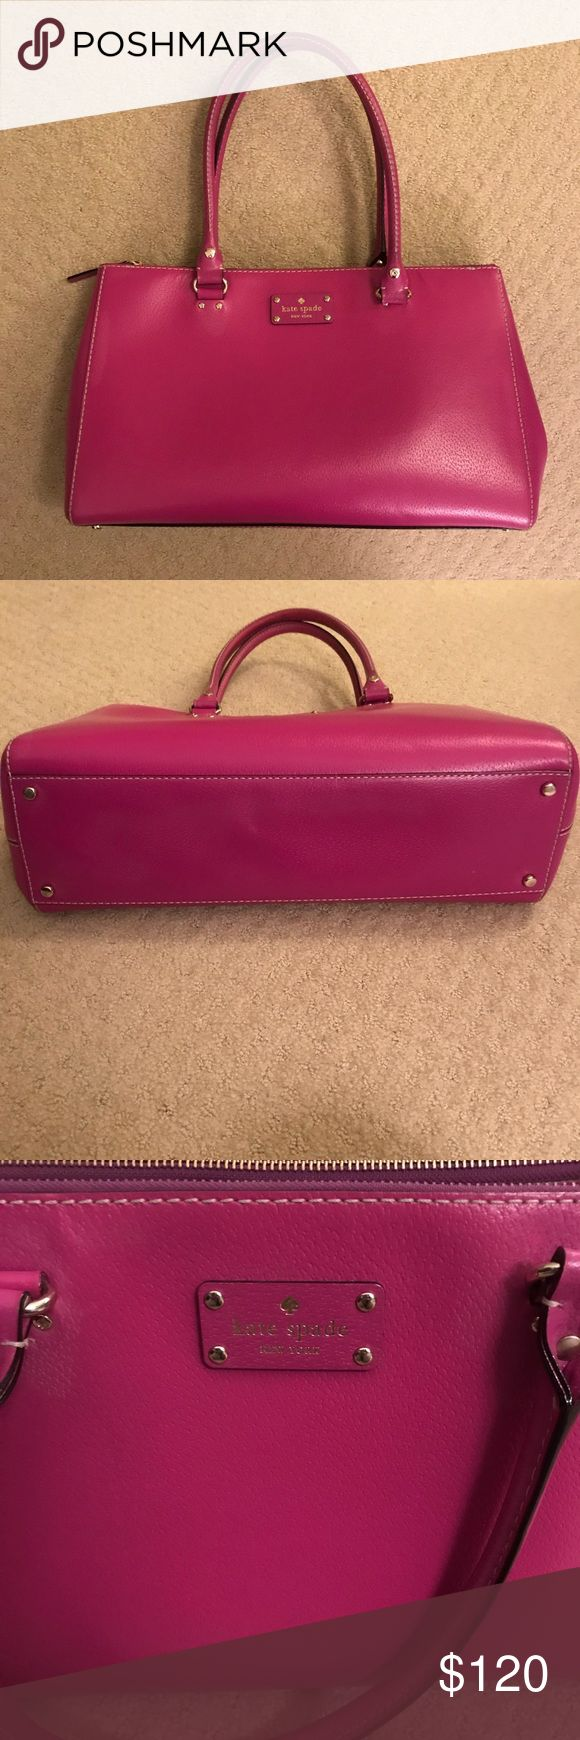 Kate Spade Pink Large Purse Perfect! Perfect condition Kate Spade purse. This hot pink bag is large and sturdy enough for everything. Inside zip pocket and two inside pockets perfect for a cell phone. Two additional outside zip compartments keep things secure. No major scratches flaws or problems. Measures approximately 15 inches across, 9 1/2 height, 4 inches wide. kate spade Bags Shoulder Bags